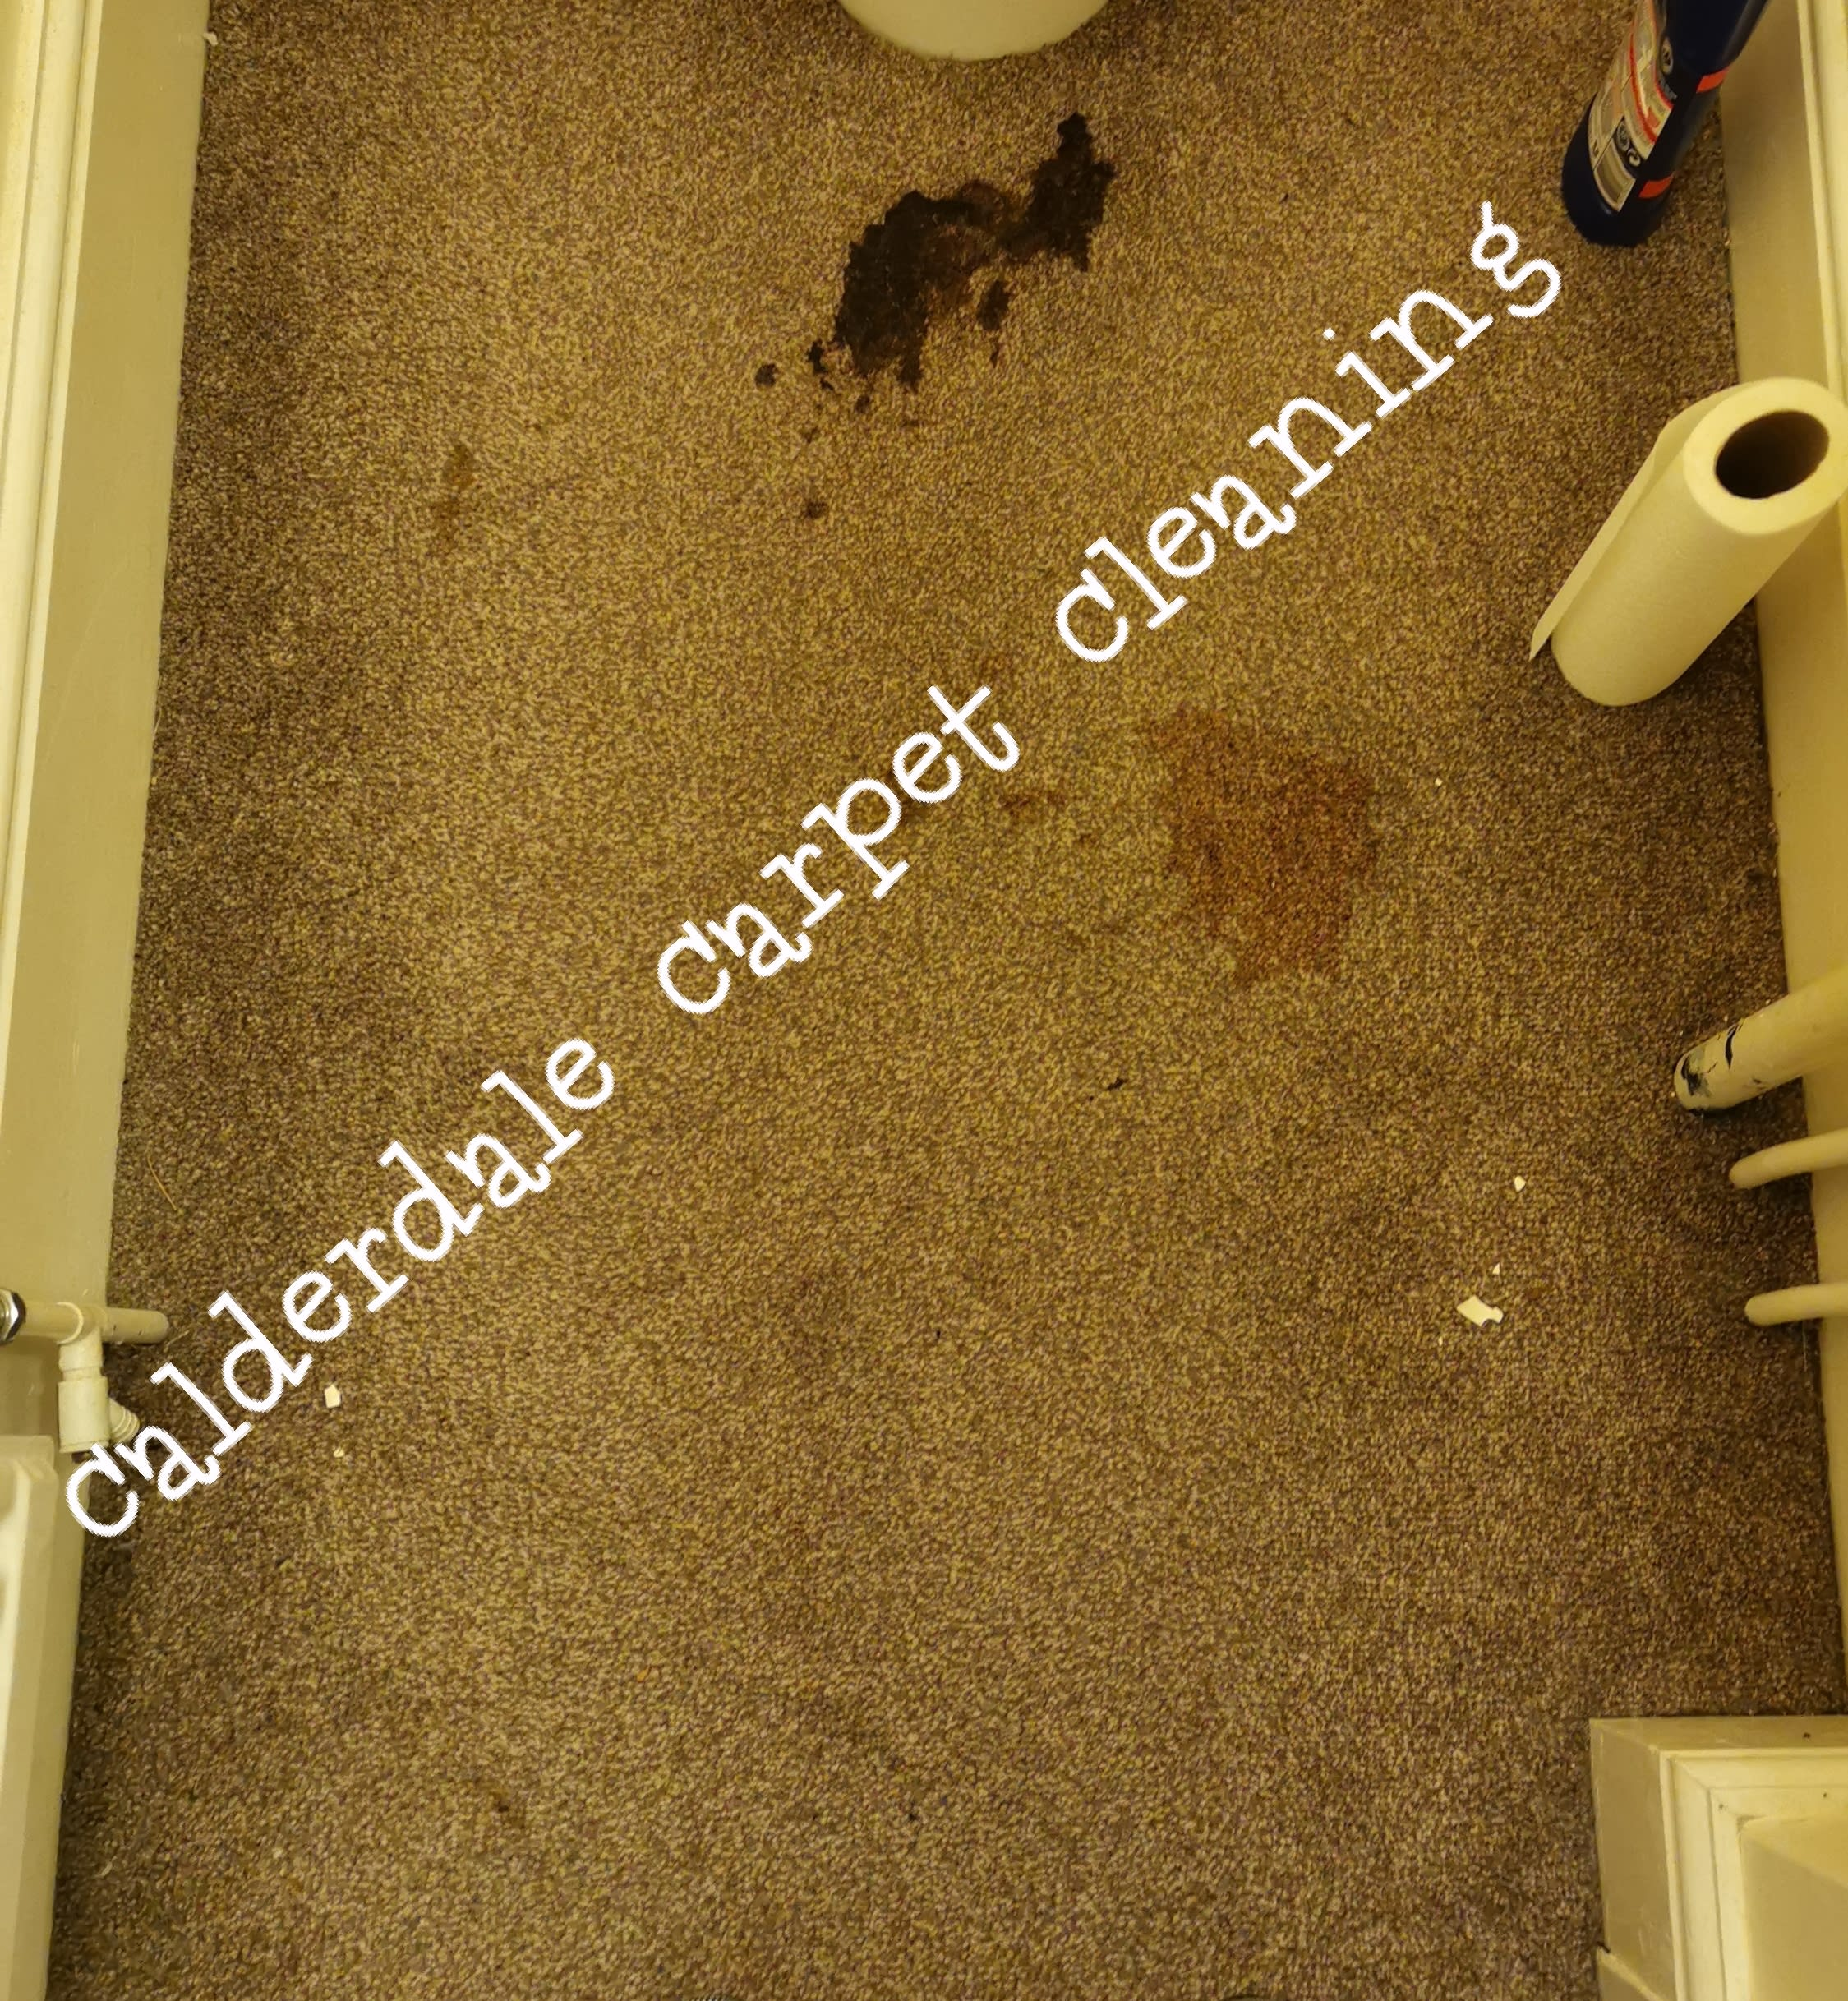 Calderdale Carpet Cleaning